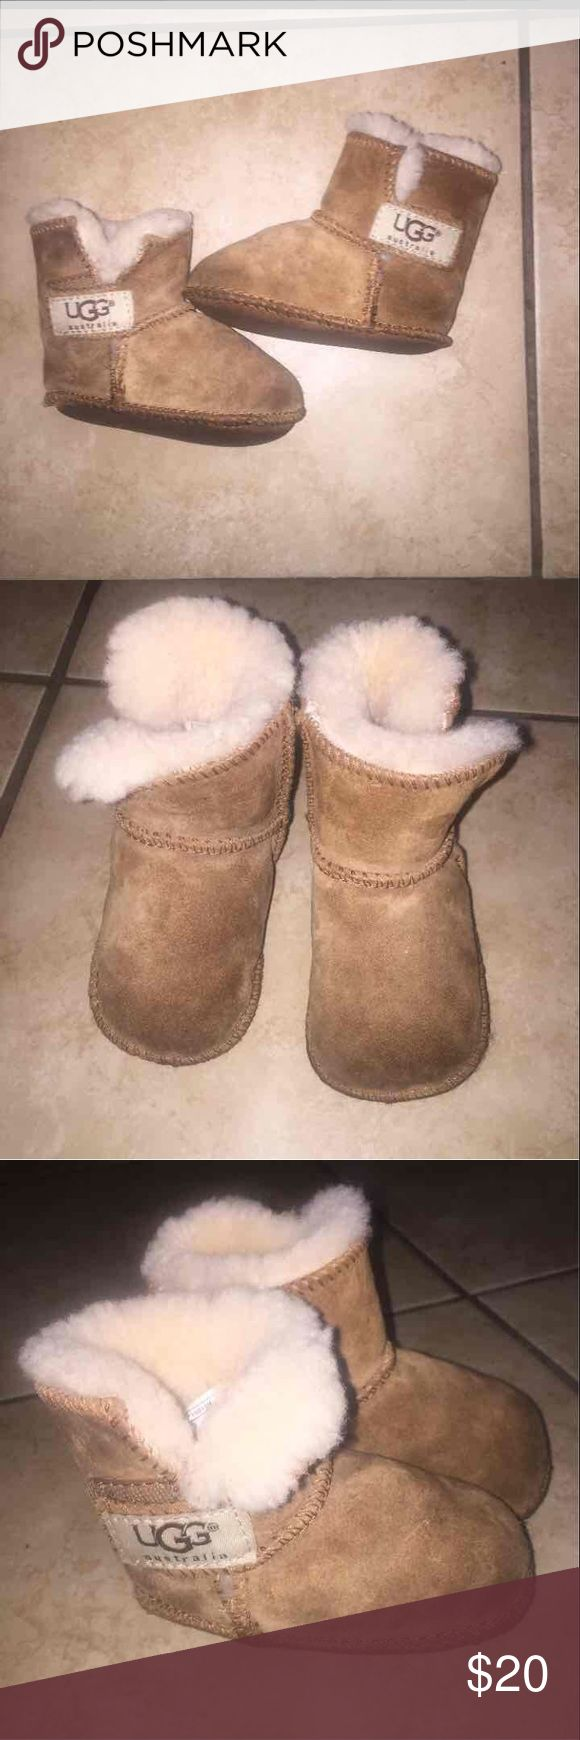 SIZE S UGG BOOTS A cute children's UGG boots. Needs a little cleaning on the bottom of the boots UGG Shoes Boots